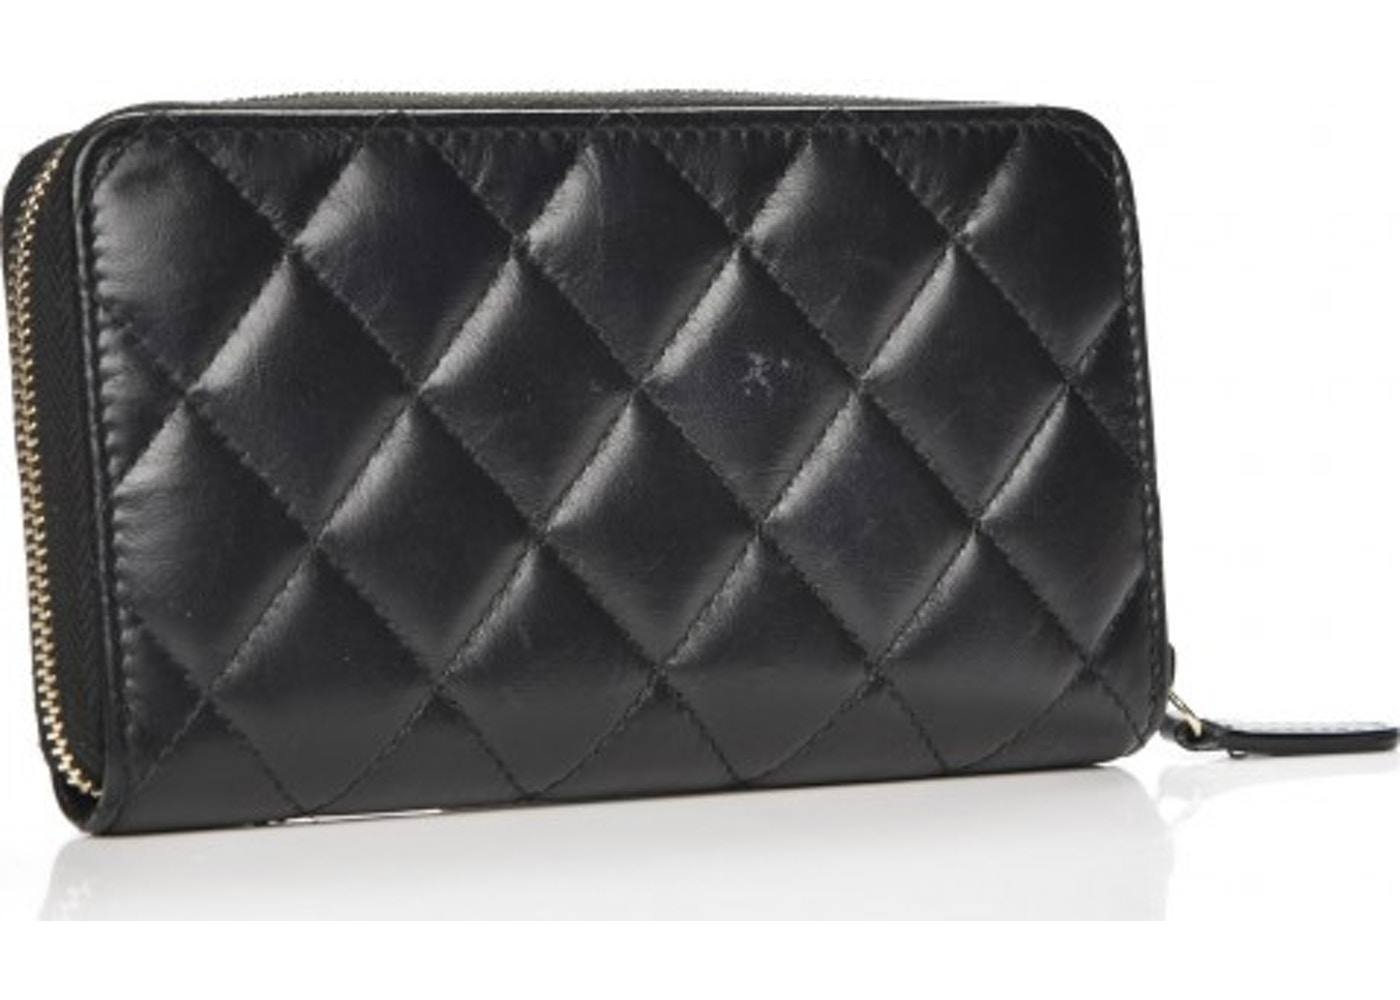 bede74c7a5df Chanel Reissue 2.55 Zip Around Wallet Quilted Diamond Lucky Charms Casino  Small Black